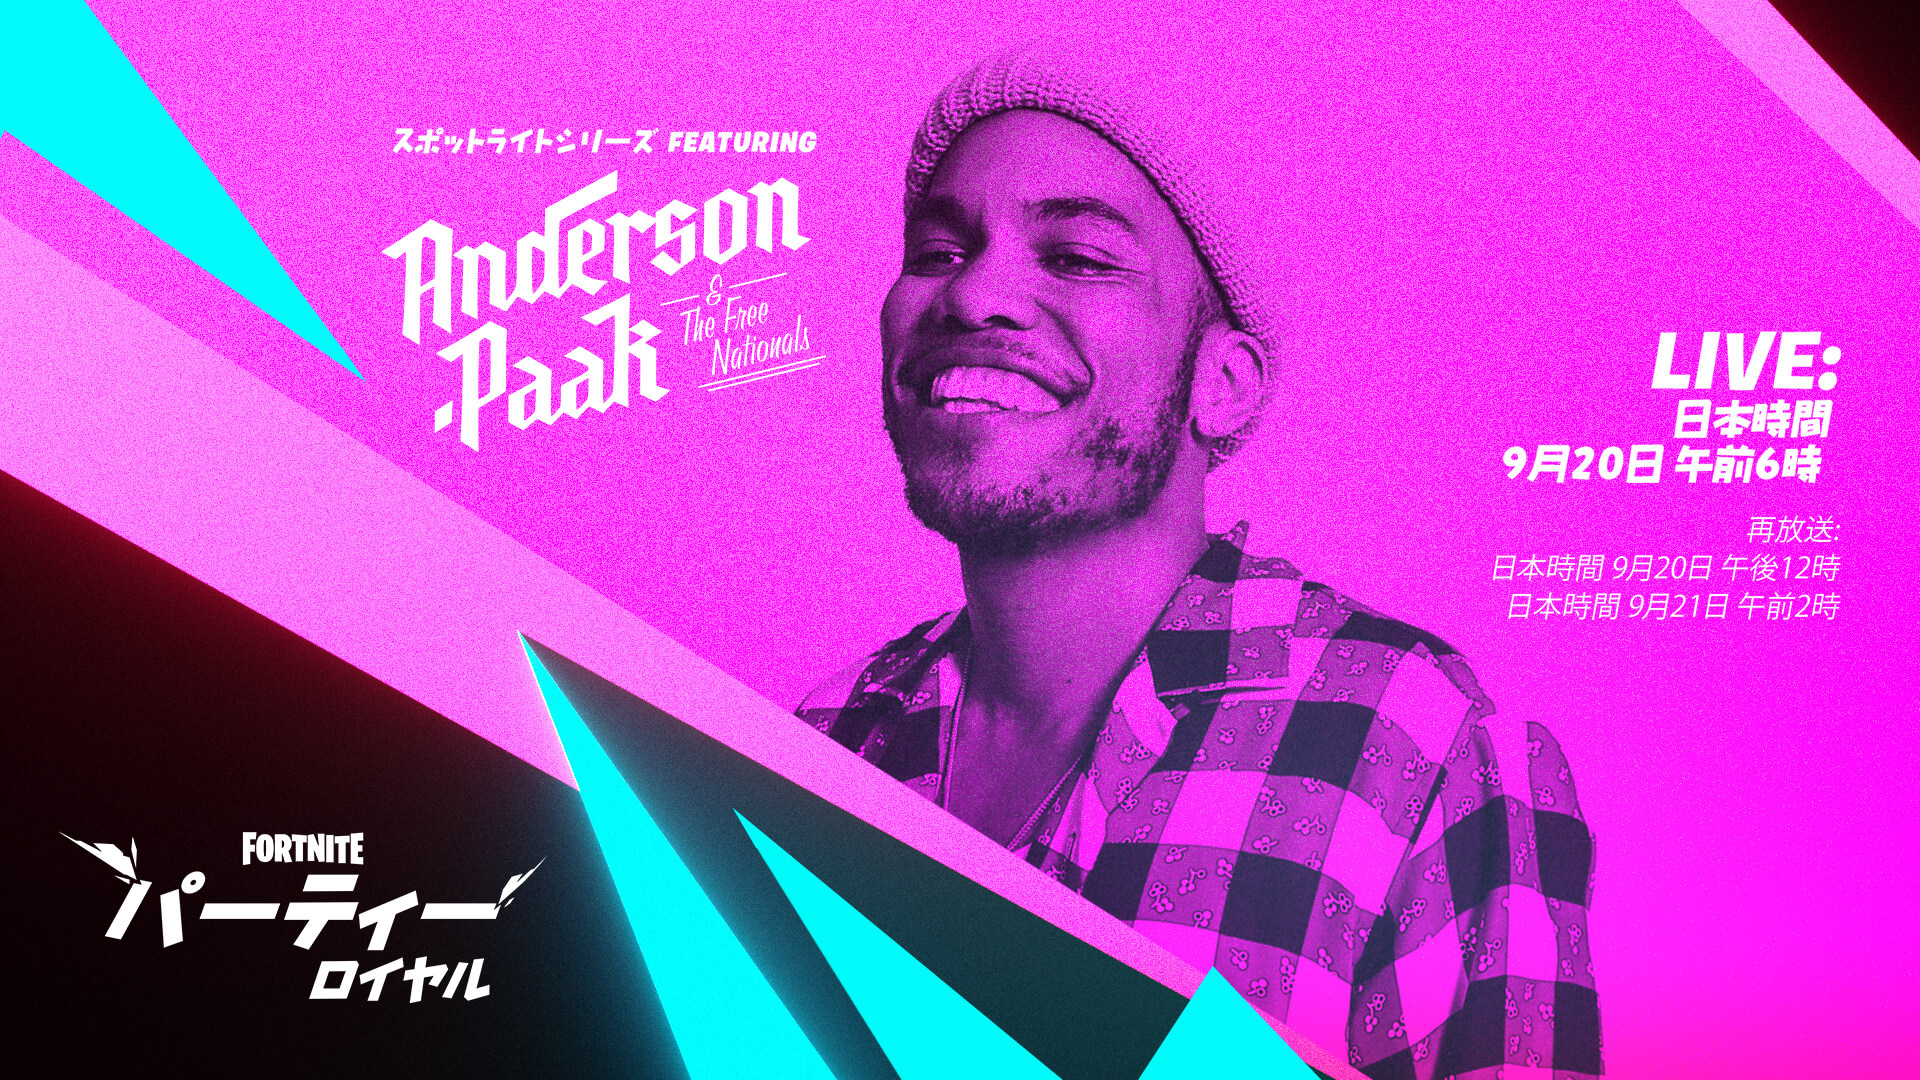 JP 14PR AndersonPaak Announcment Social